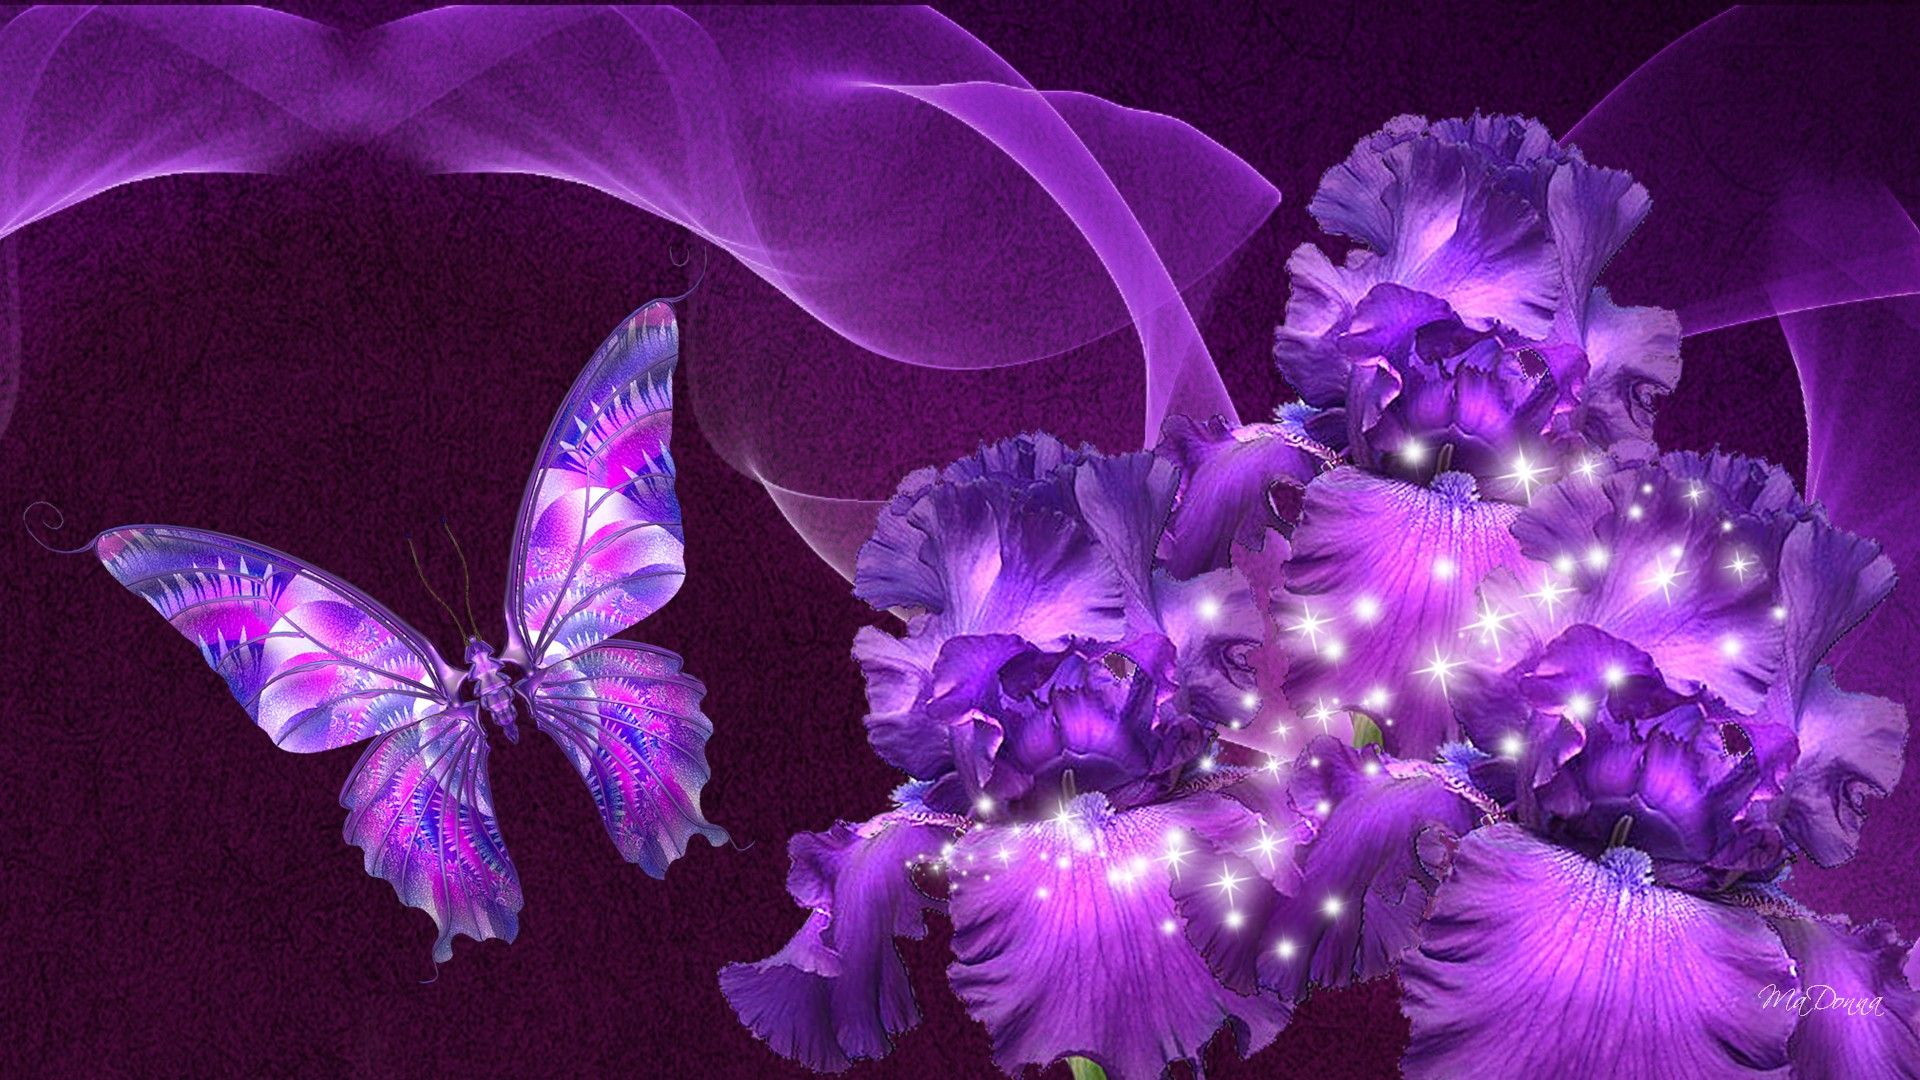 Click Here To Download In HD Format Butterfly 23 Hd Wallpapers